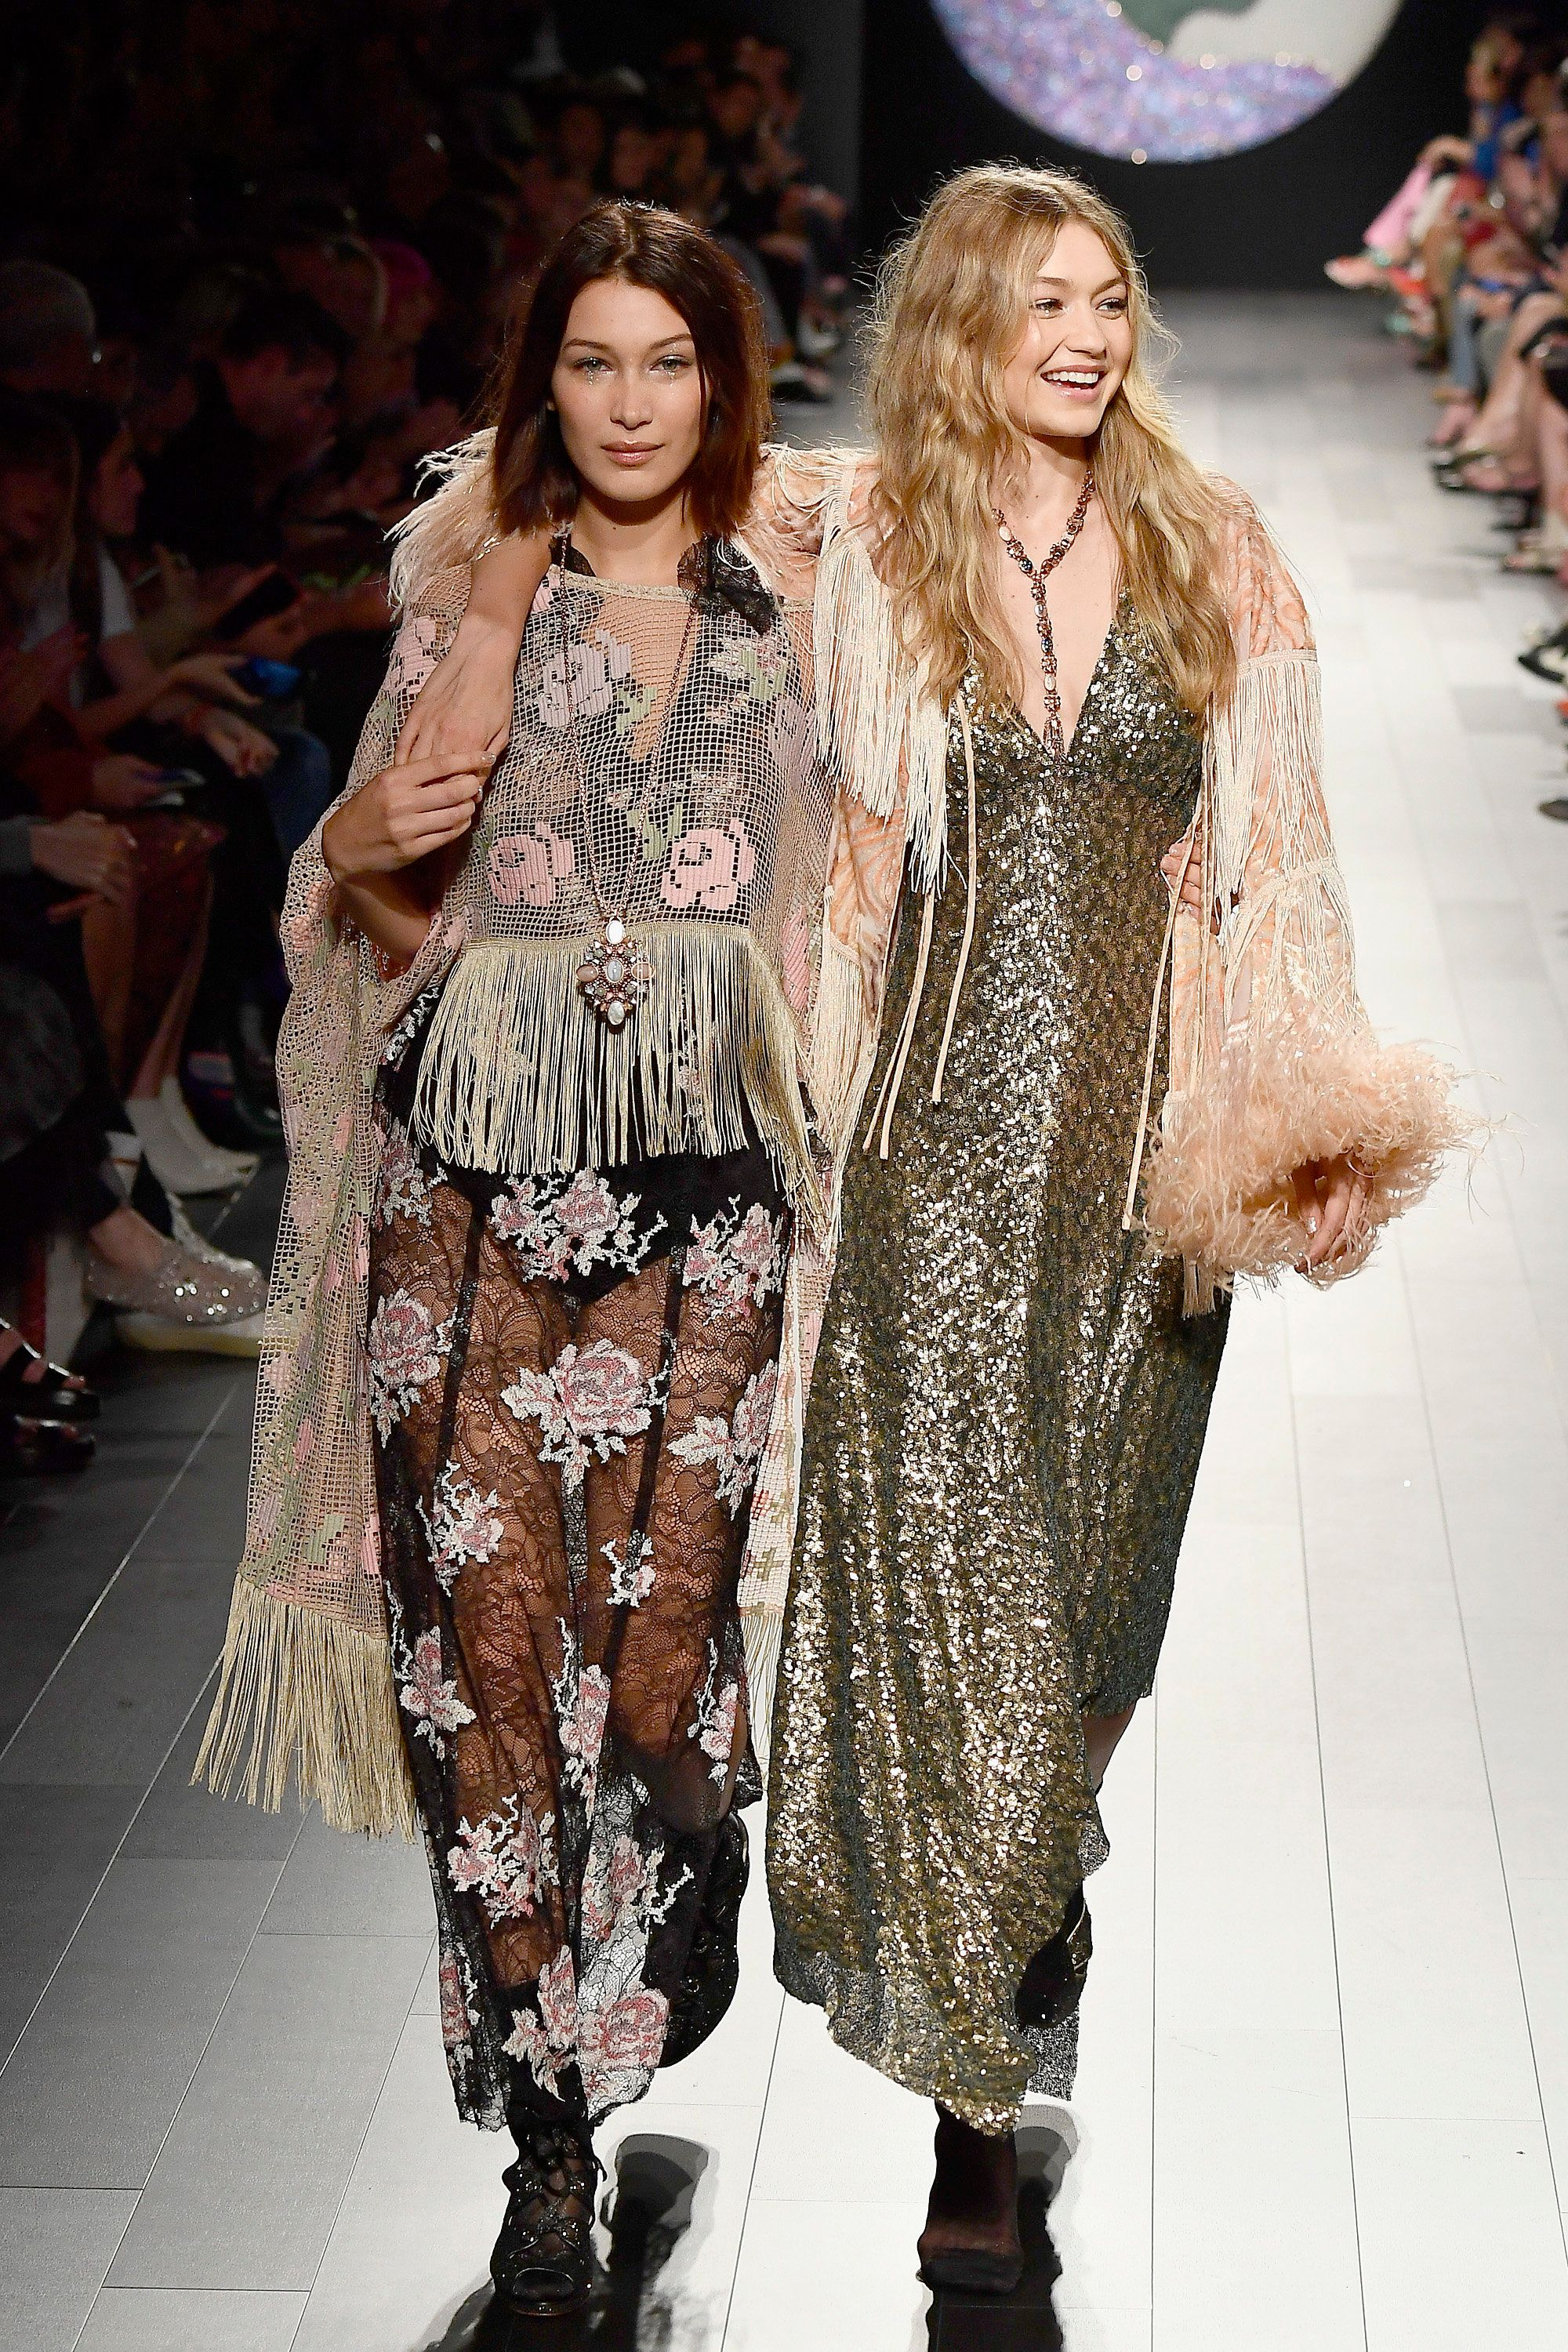 NEW YORK, NY - SEPTEMBER 11:  Models Bella Haddid and Gigi Hadid walk the runway for Anna Sui fashion show during New York Fashion Week: The Shows at Gallery 1, Skylight Clarkson Sq on September 11, 2017 in New York City.  (Photo by Frazer Harrison/Getty Images For NYFW: The Shows)